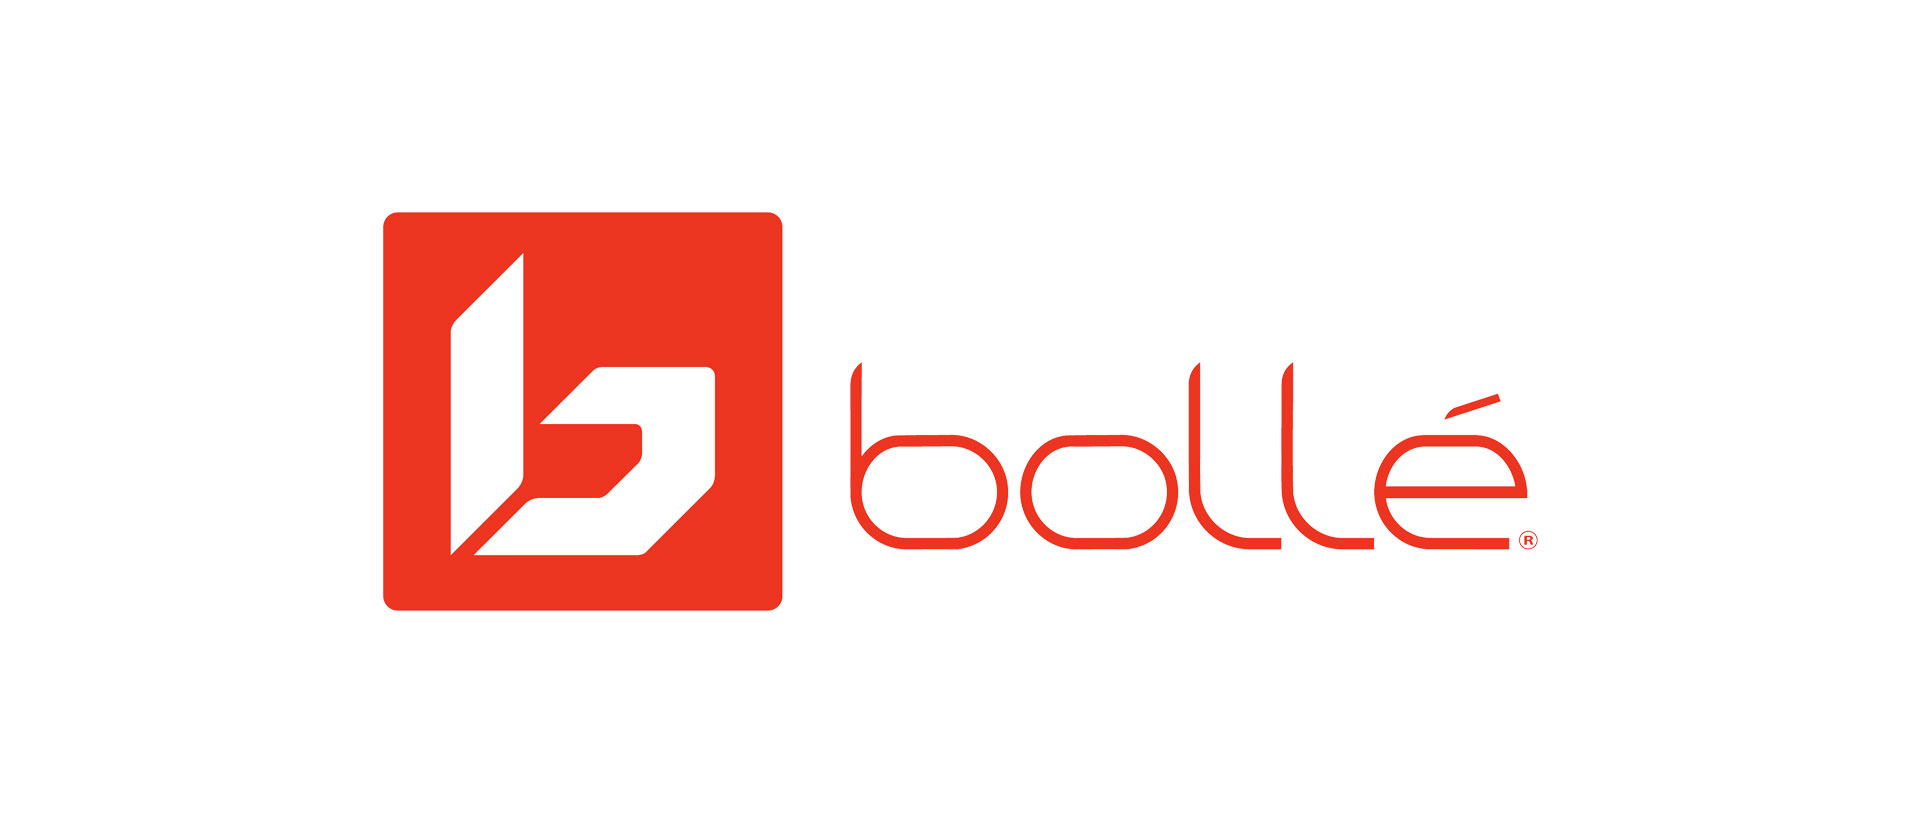 bolle sunglasses london logo in red